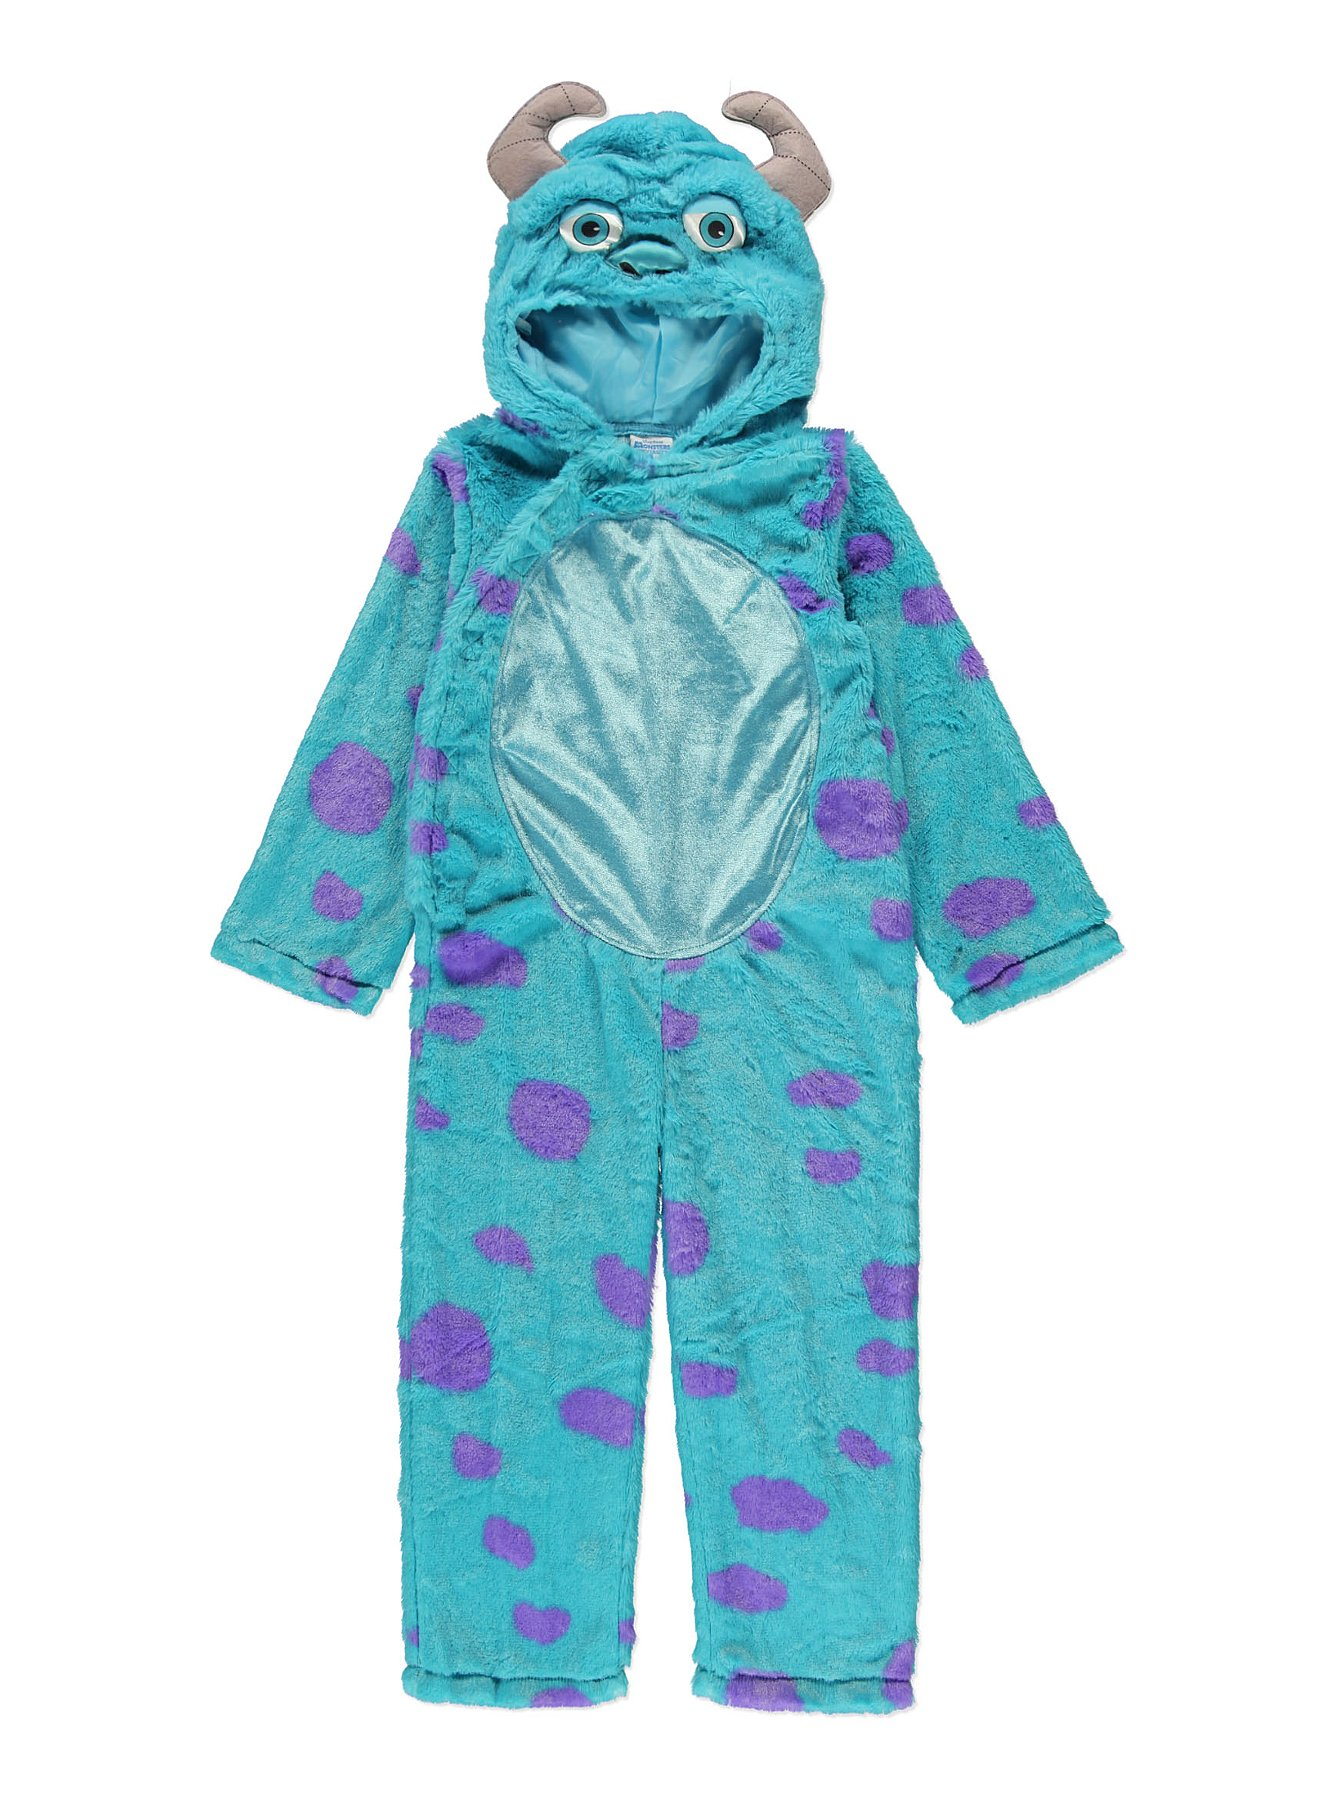 Monsters Inc Sully Costume | Boys | George at ASDA